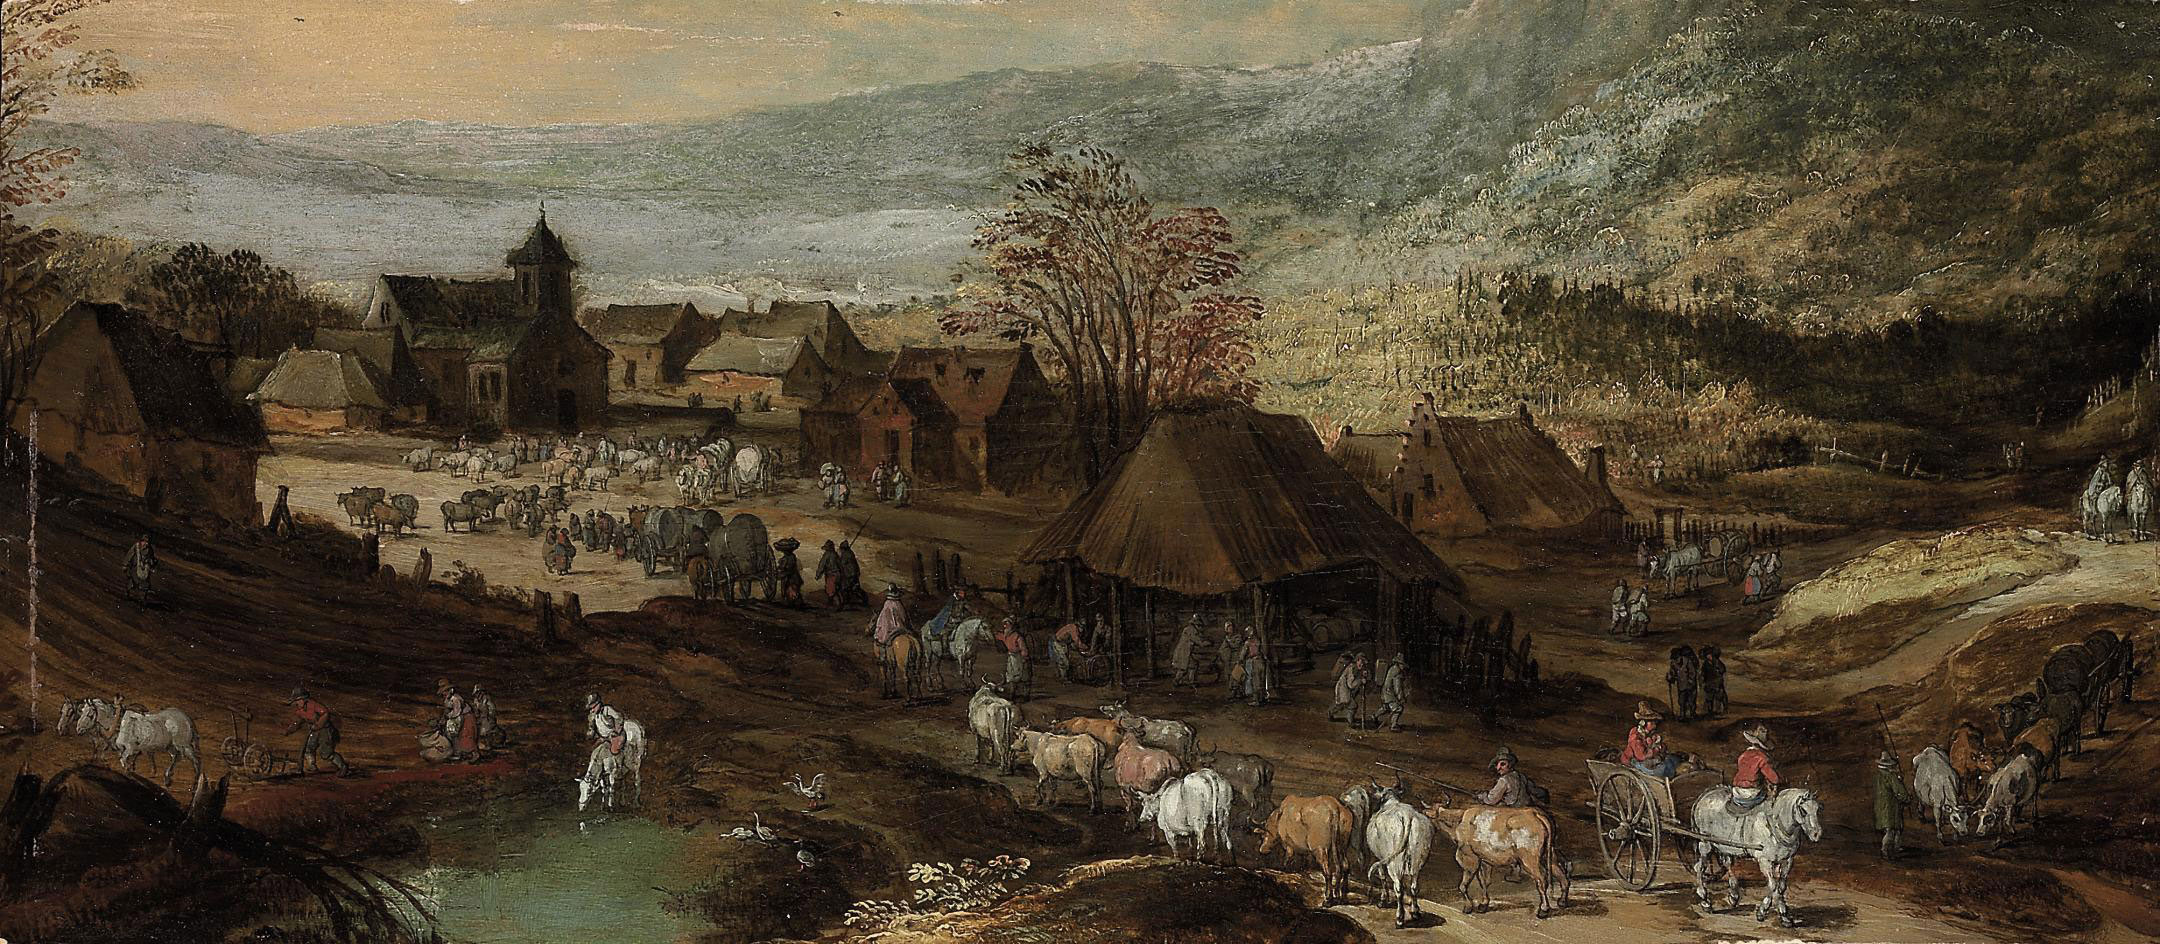 A village with figures, cattle and horses, mountains beyond